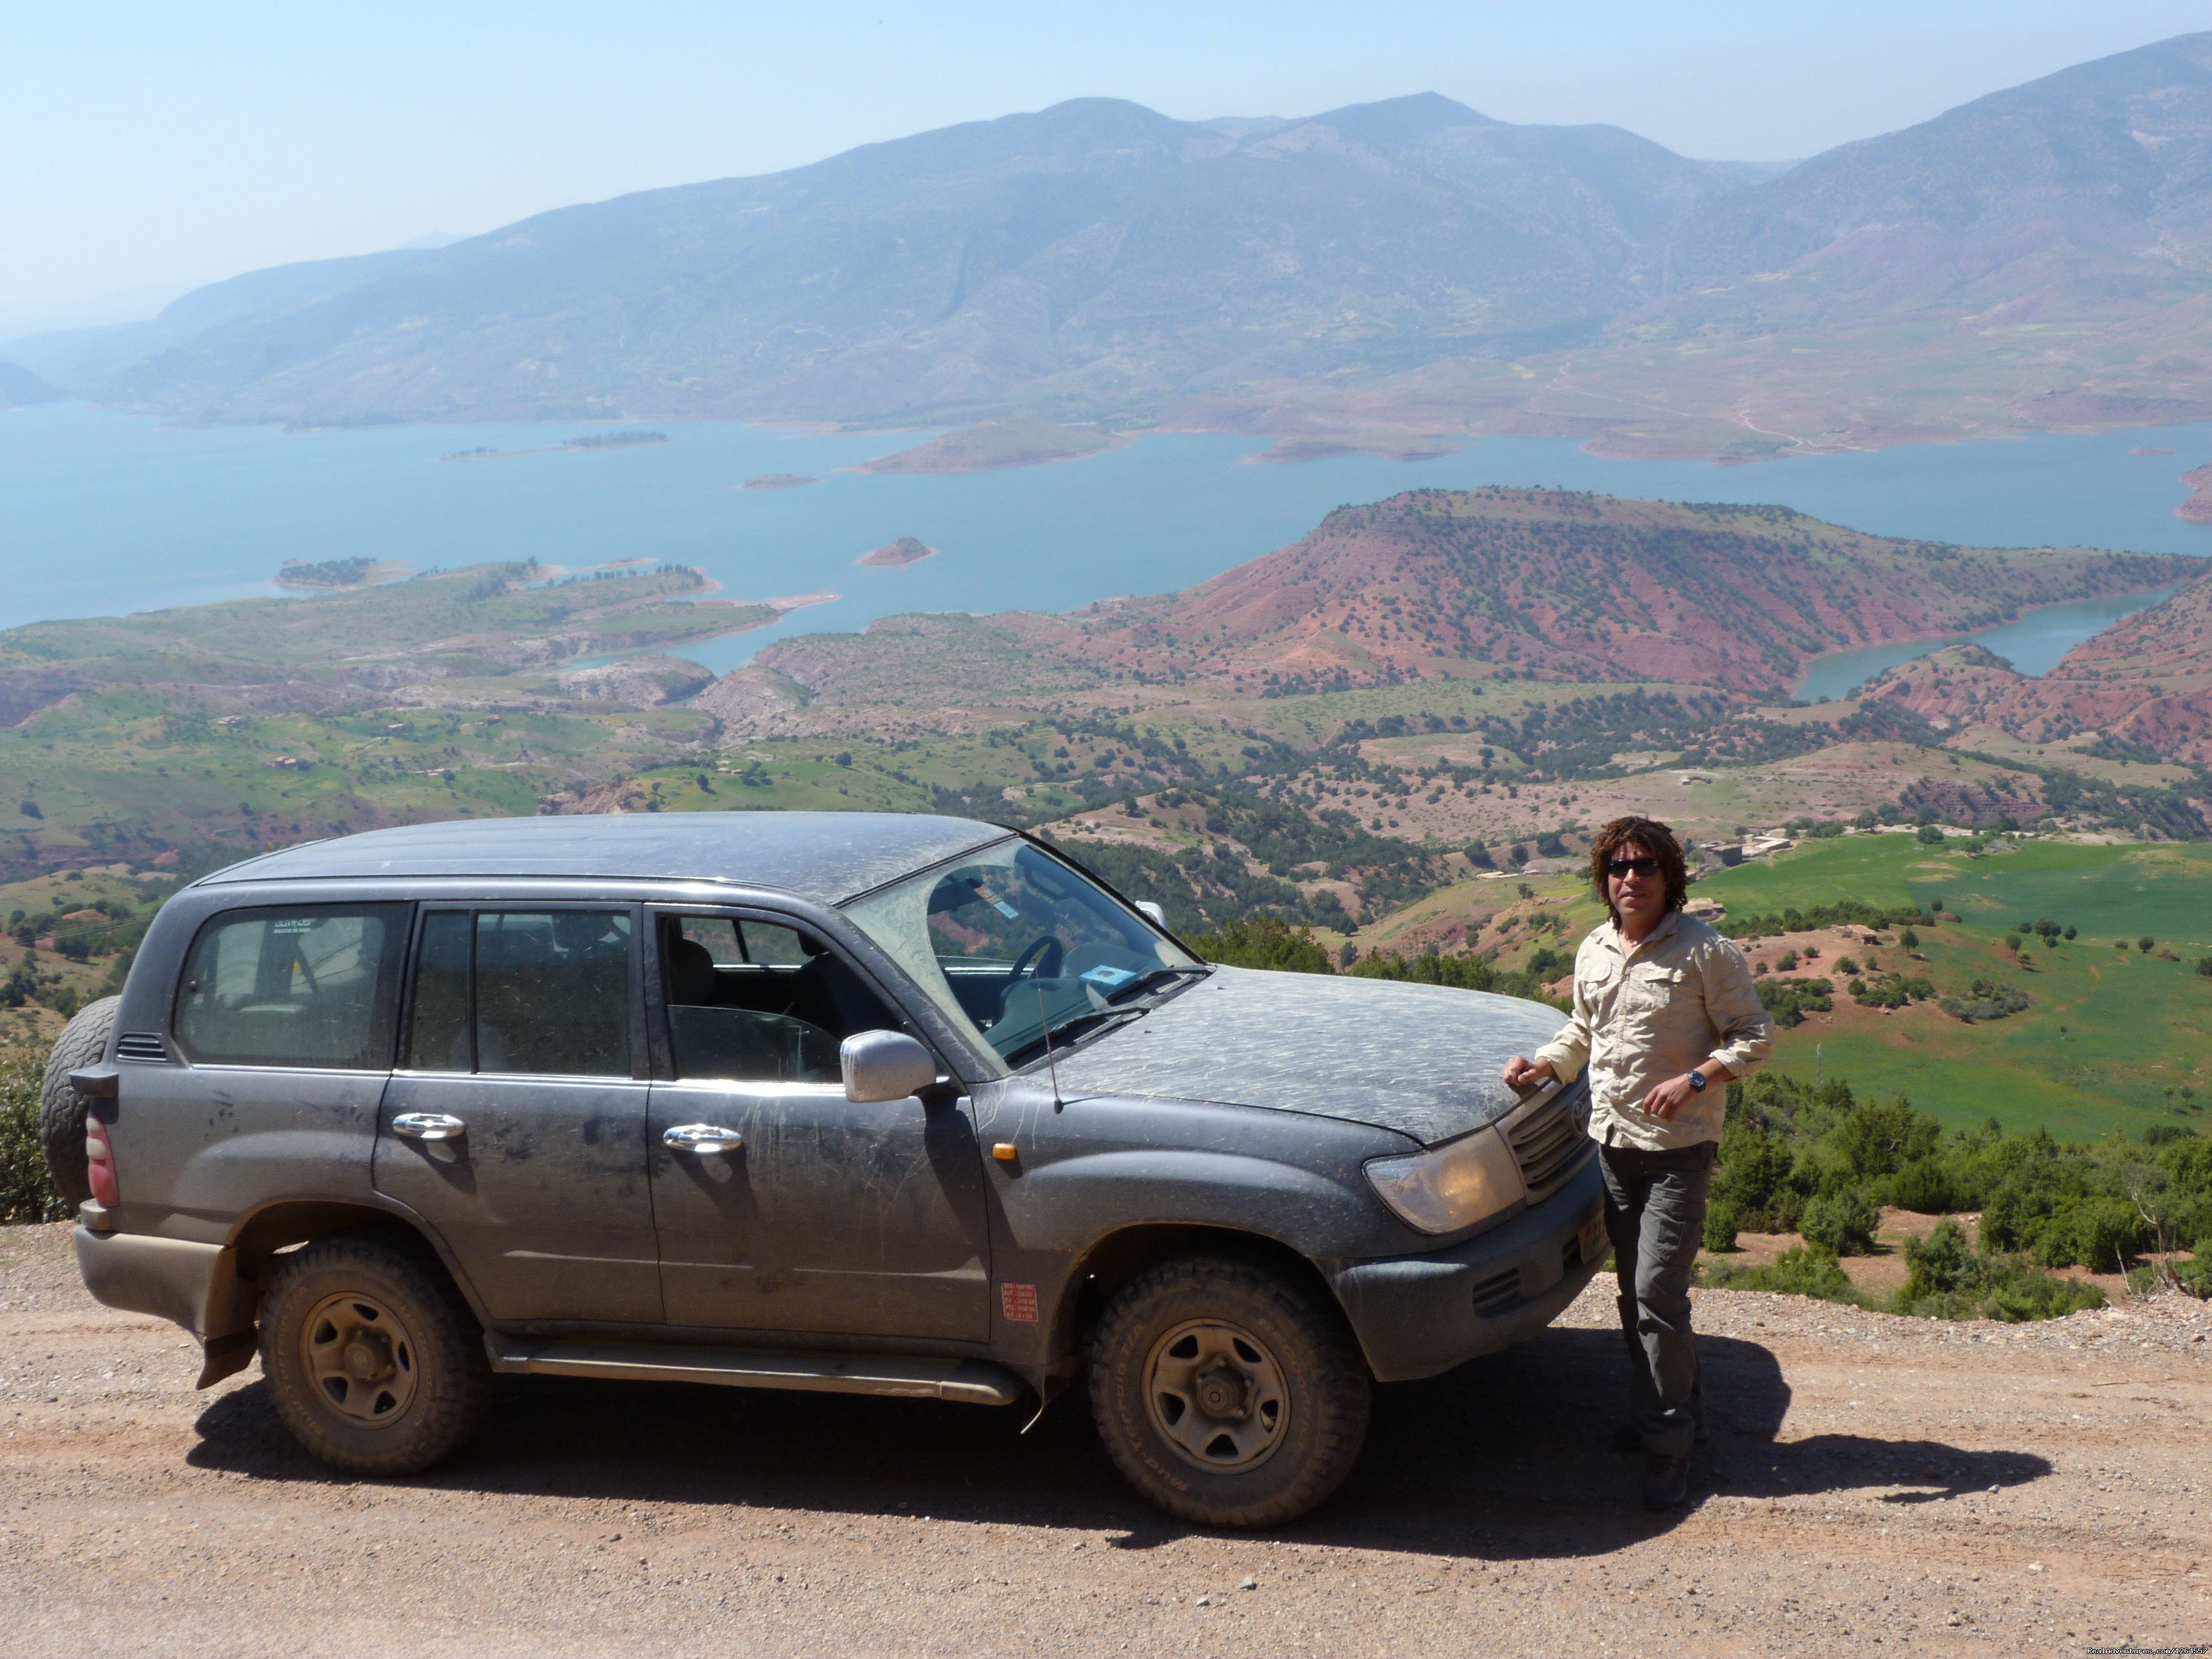 4x4 adventures in Morocco